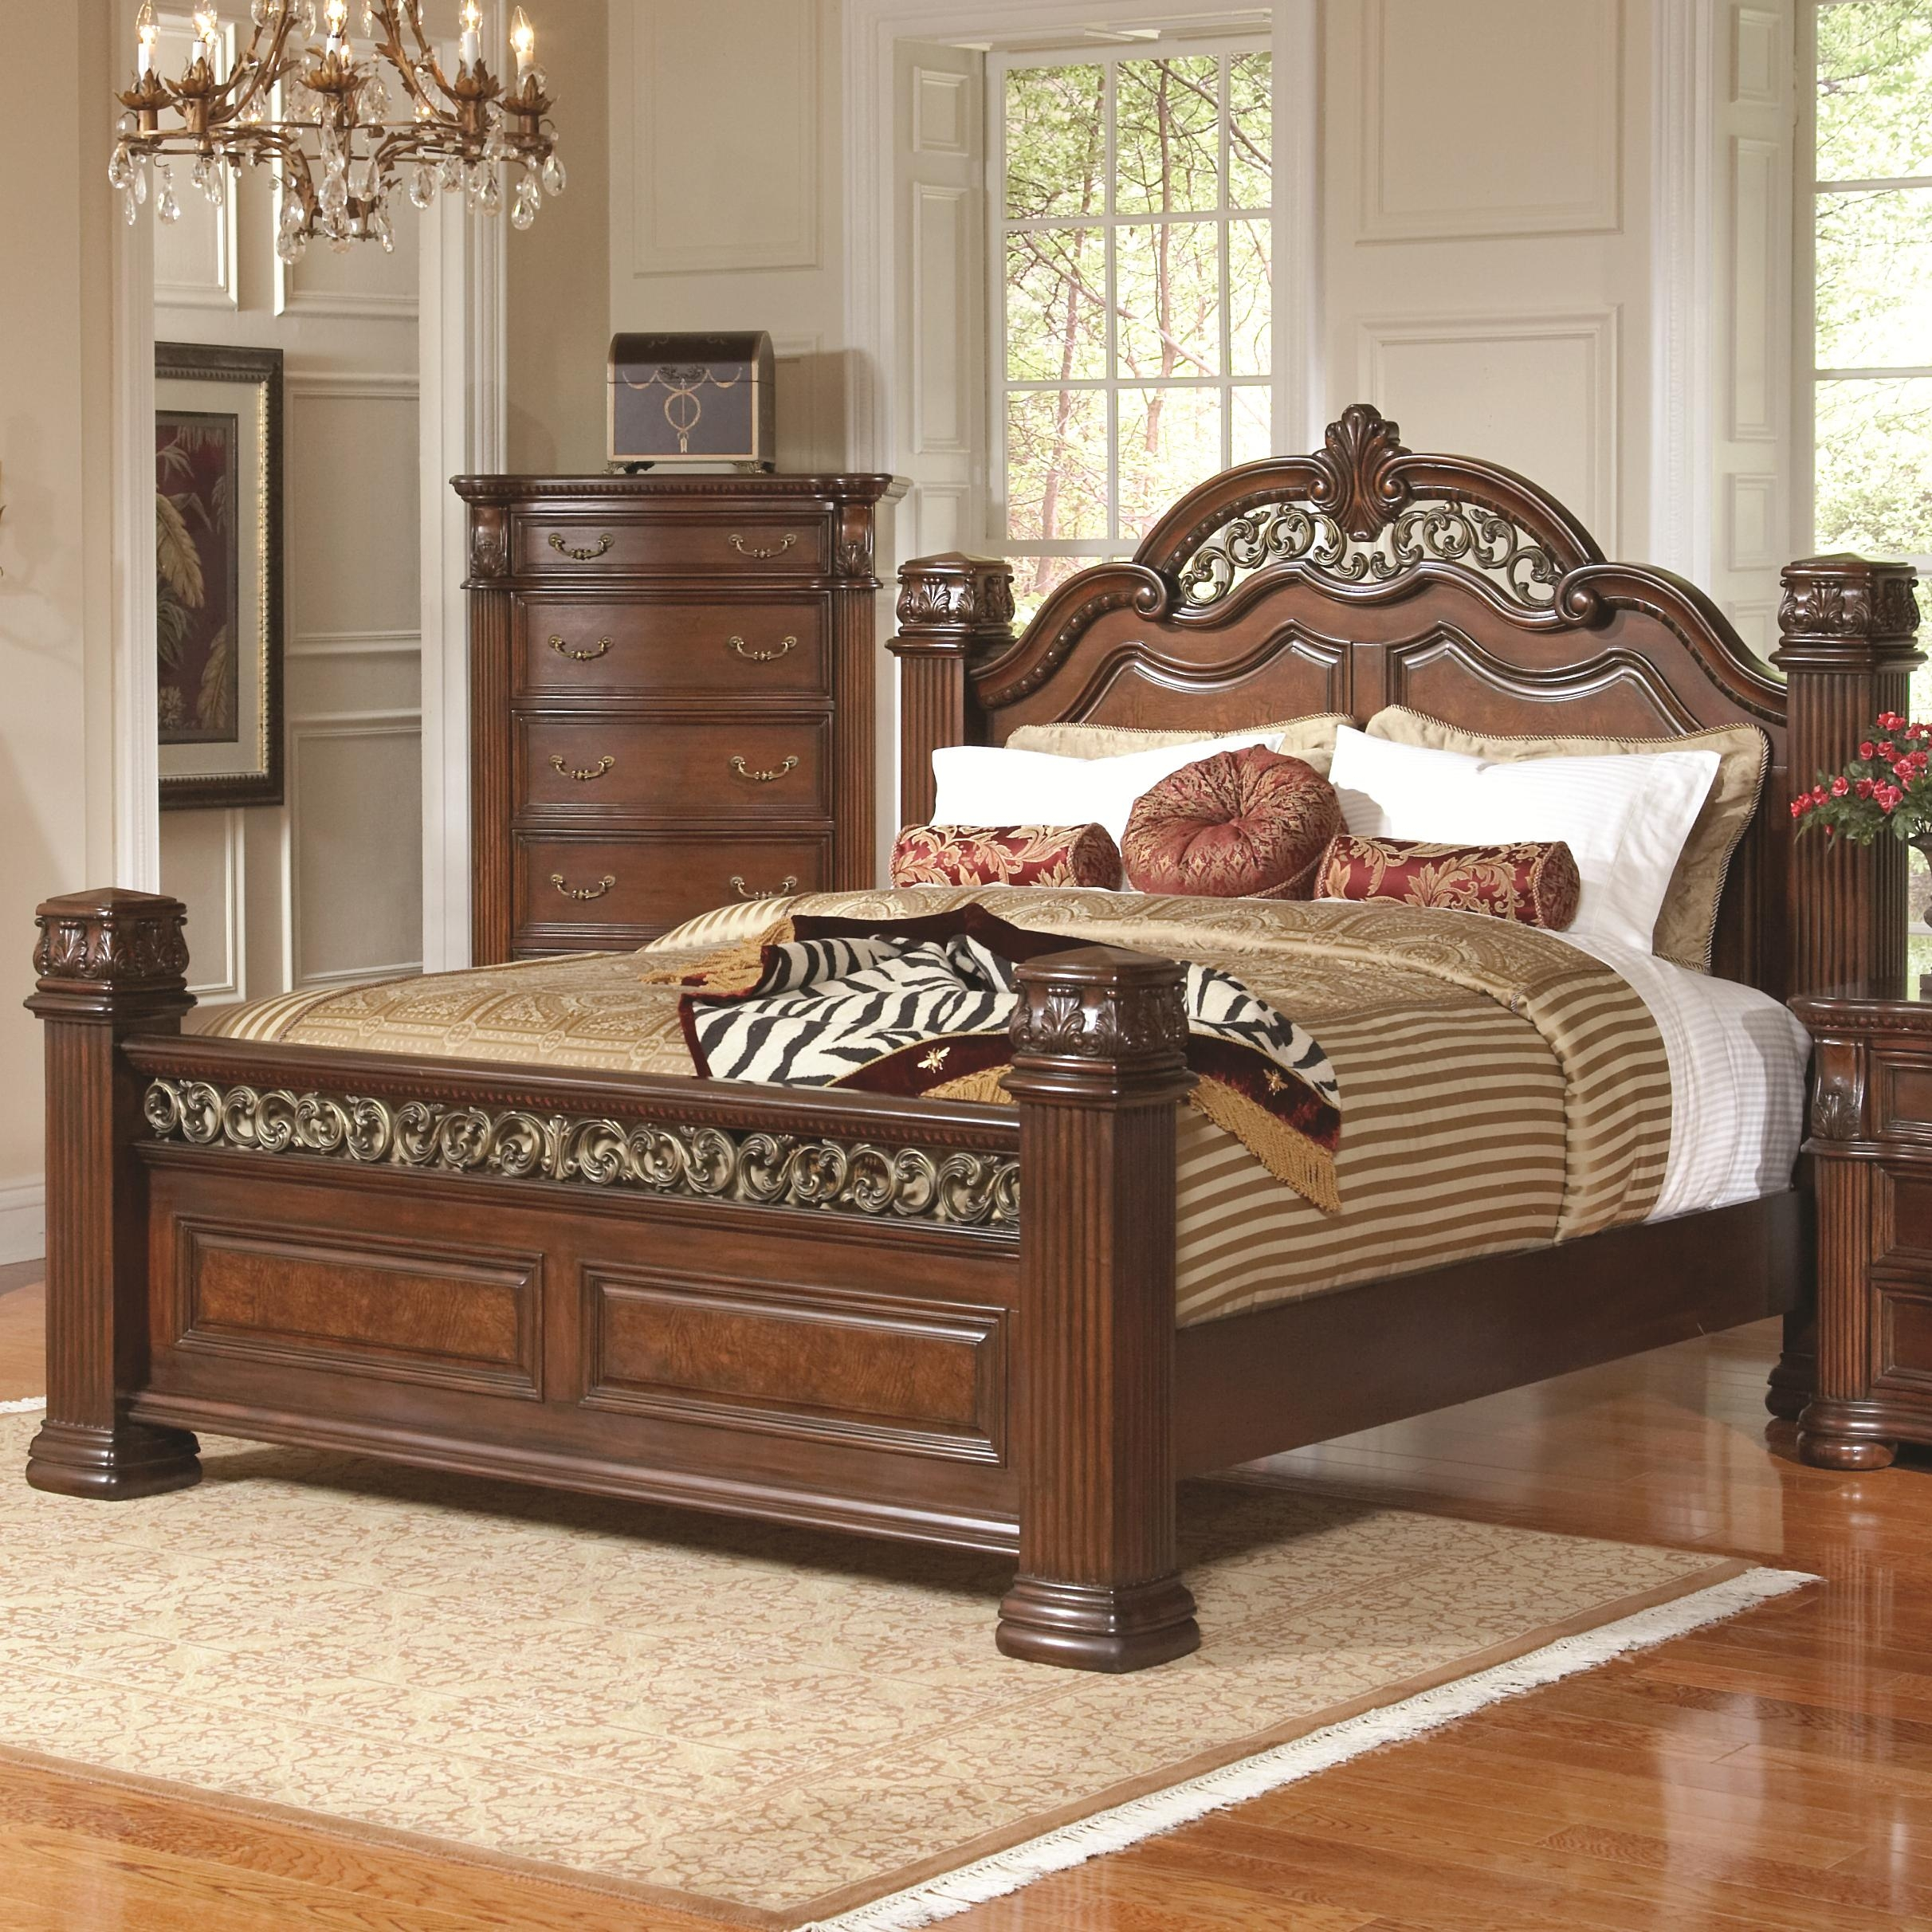 Ornate Wooden Bed Frames